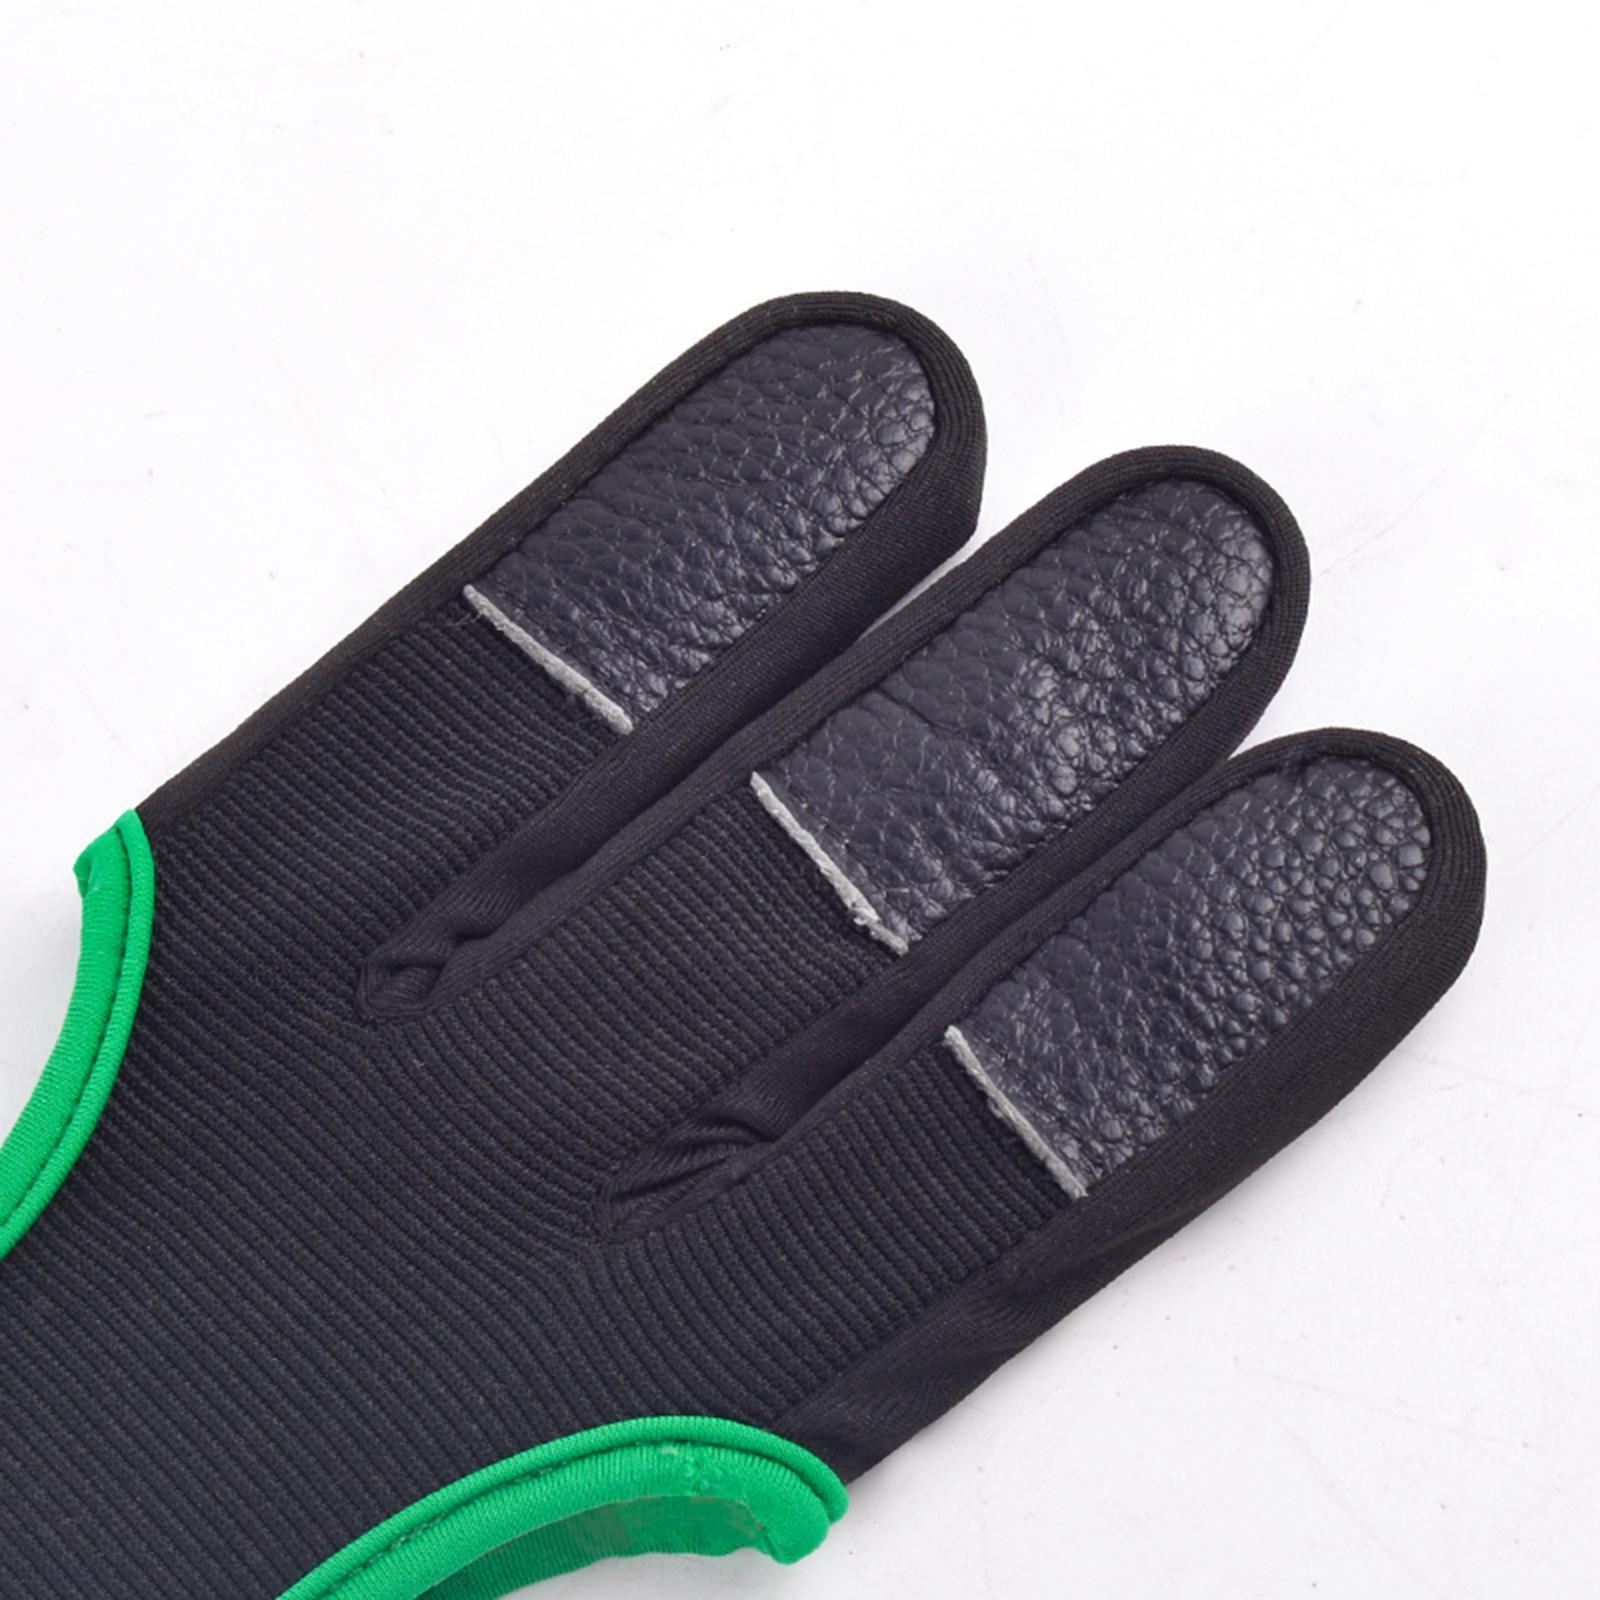 thumbnail 81 - Archery Glove for Recurve & Compound Bow 3 Finger Guard for Women Men Youth